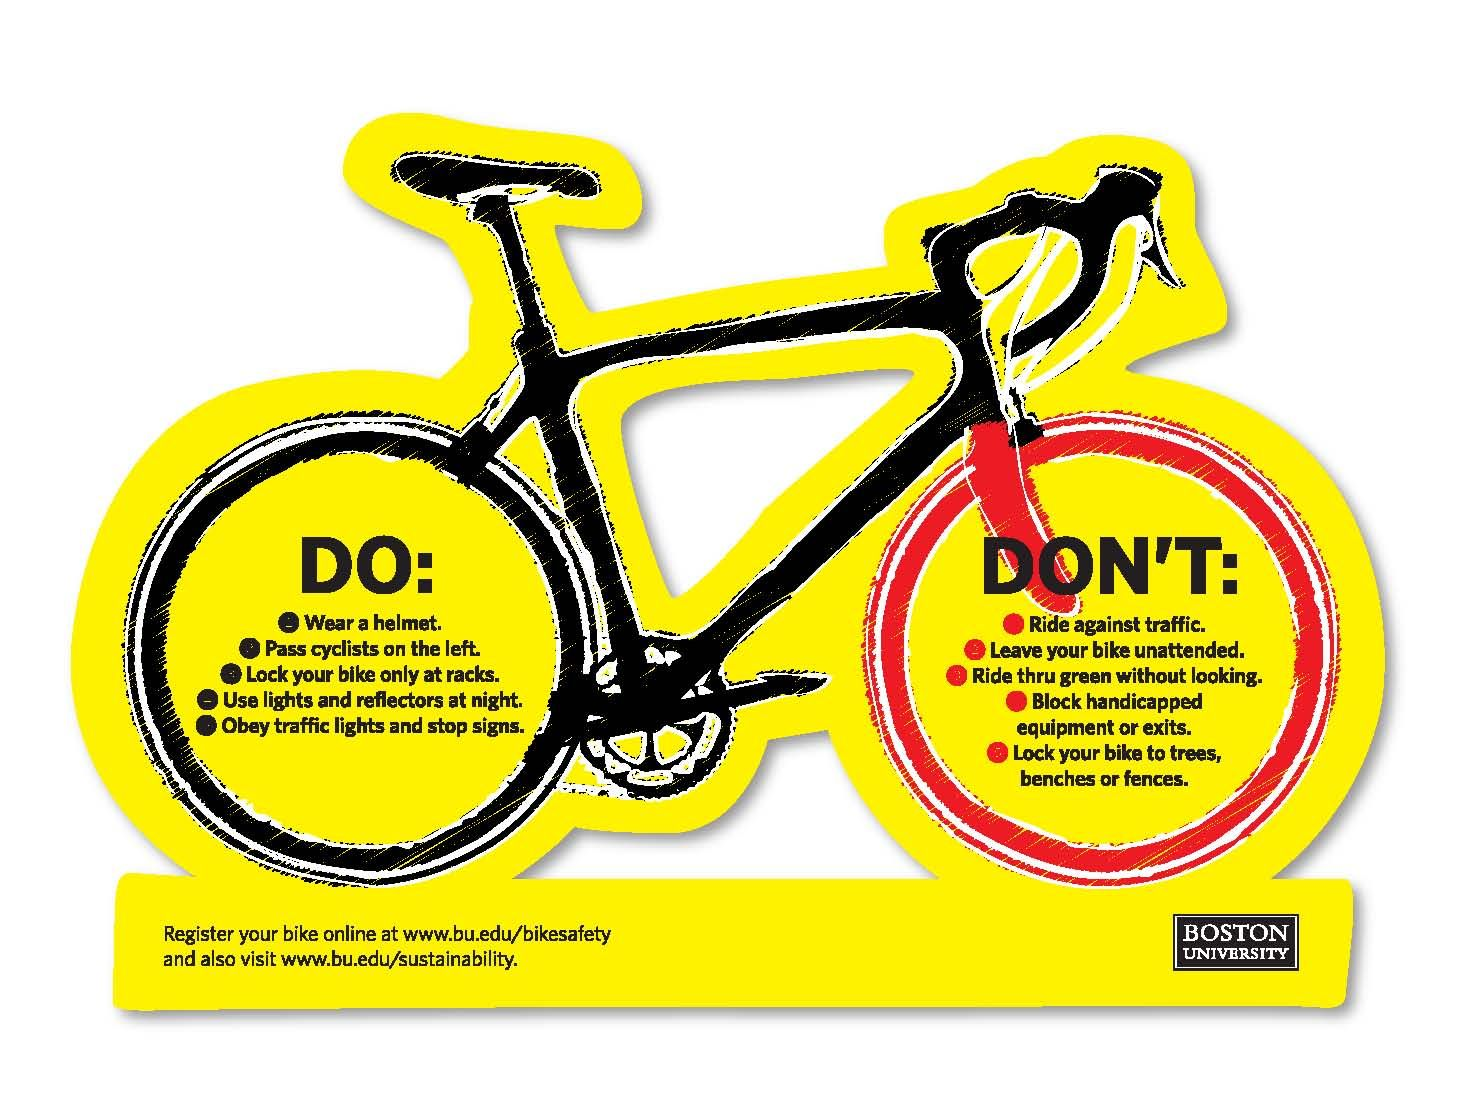 Cyclists Need To Follow Rules Of The Road For The Common